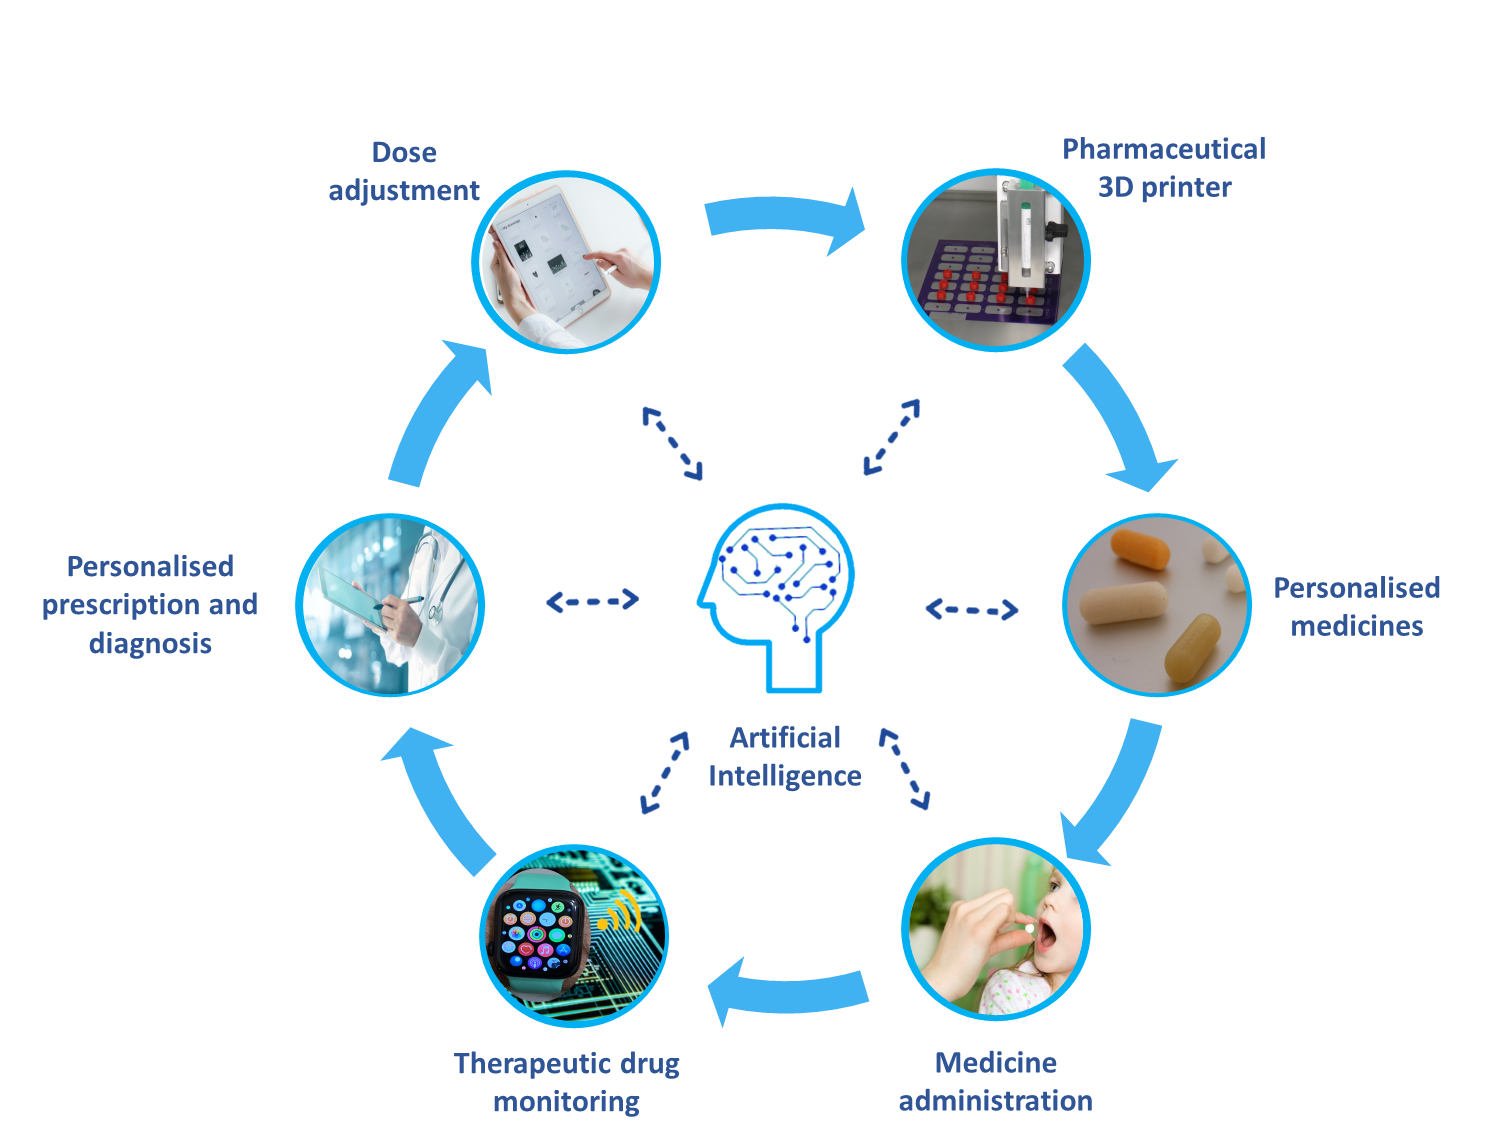 The virtuous cycle of personalized medicine. Image via FabRx.